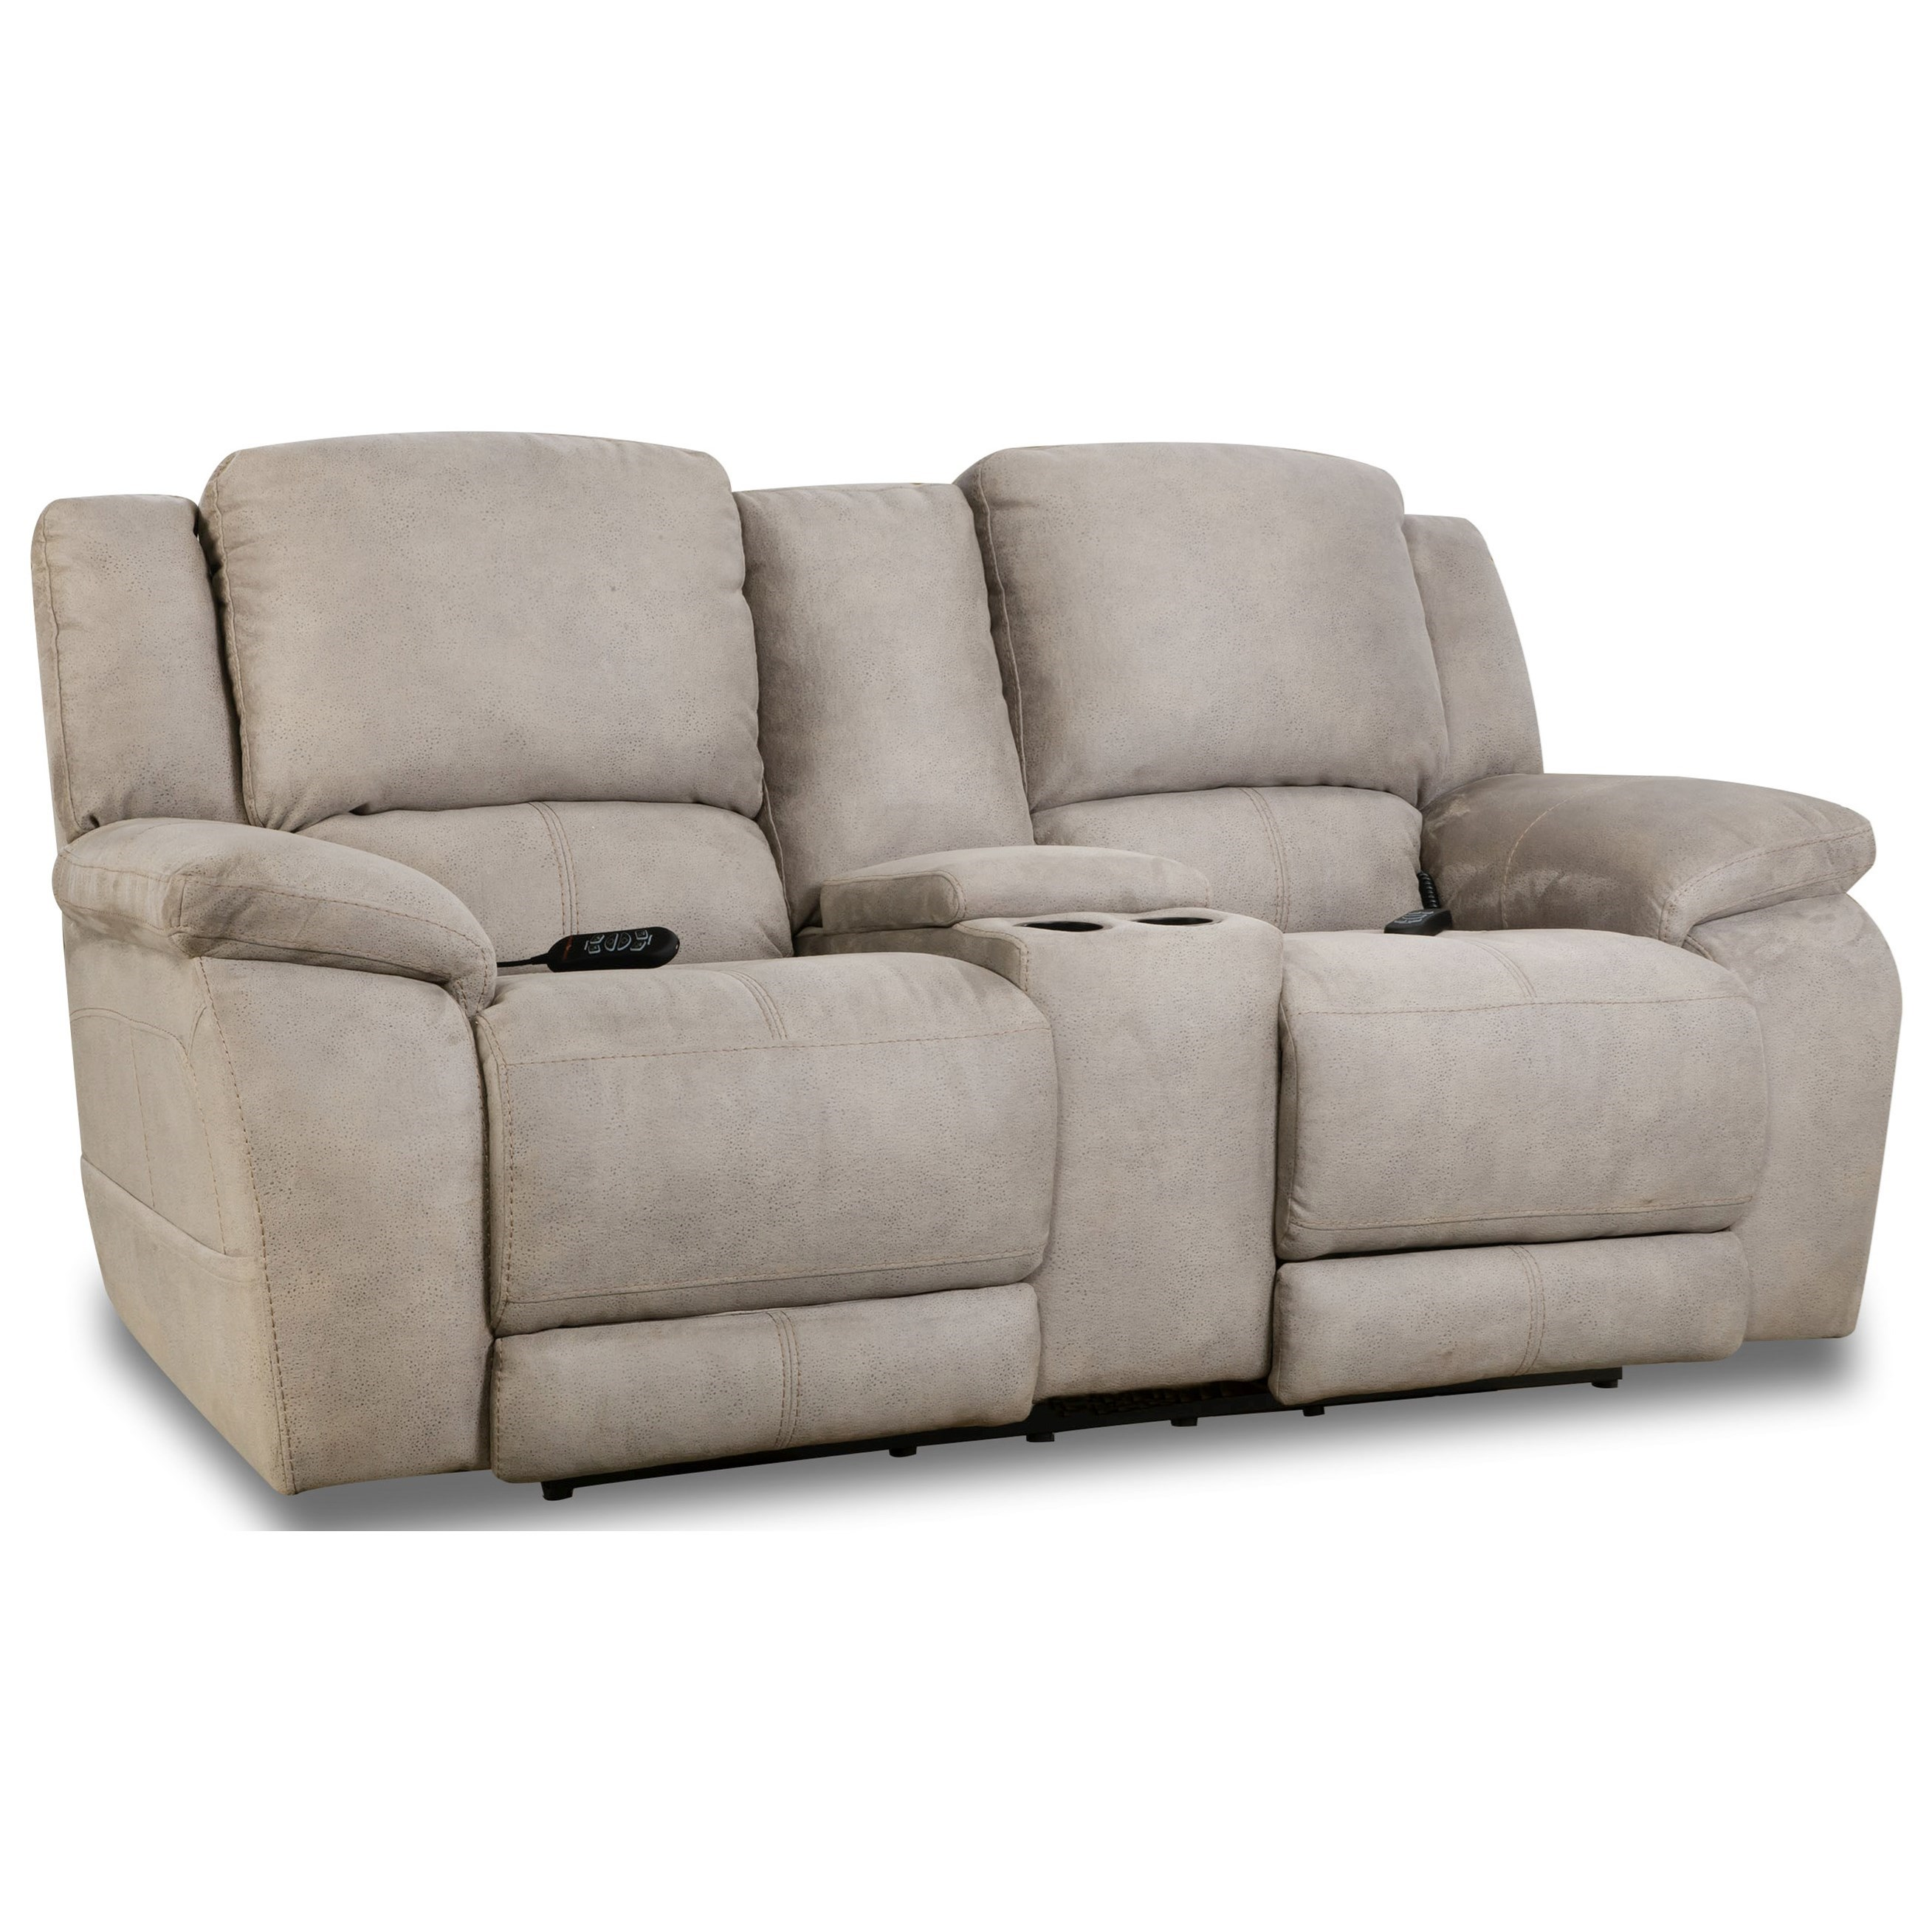 Explorer Power Console Loveseat at Ruby Gordon Home